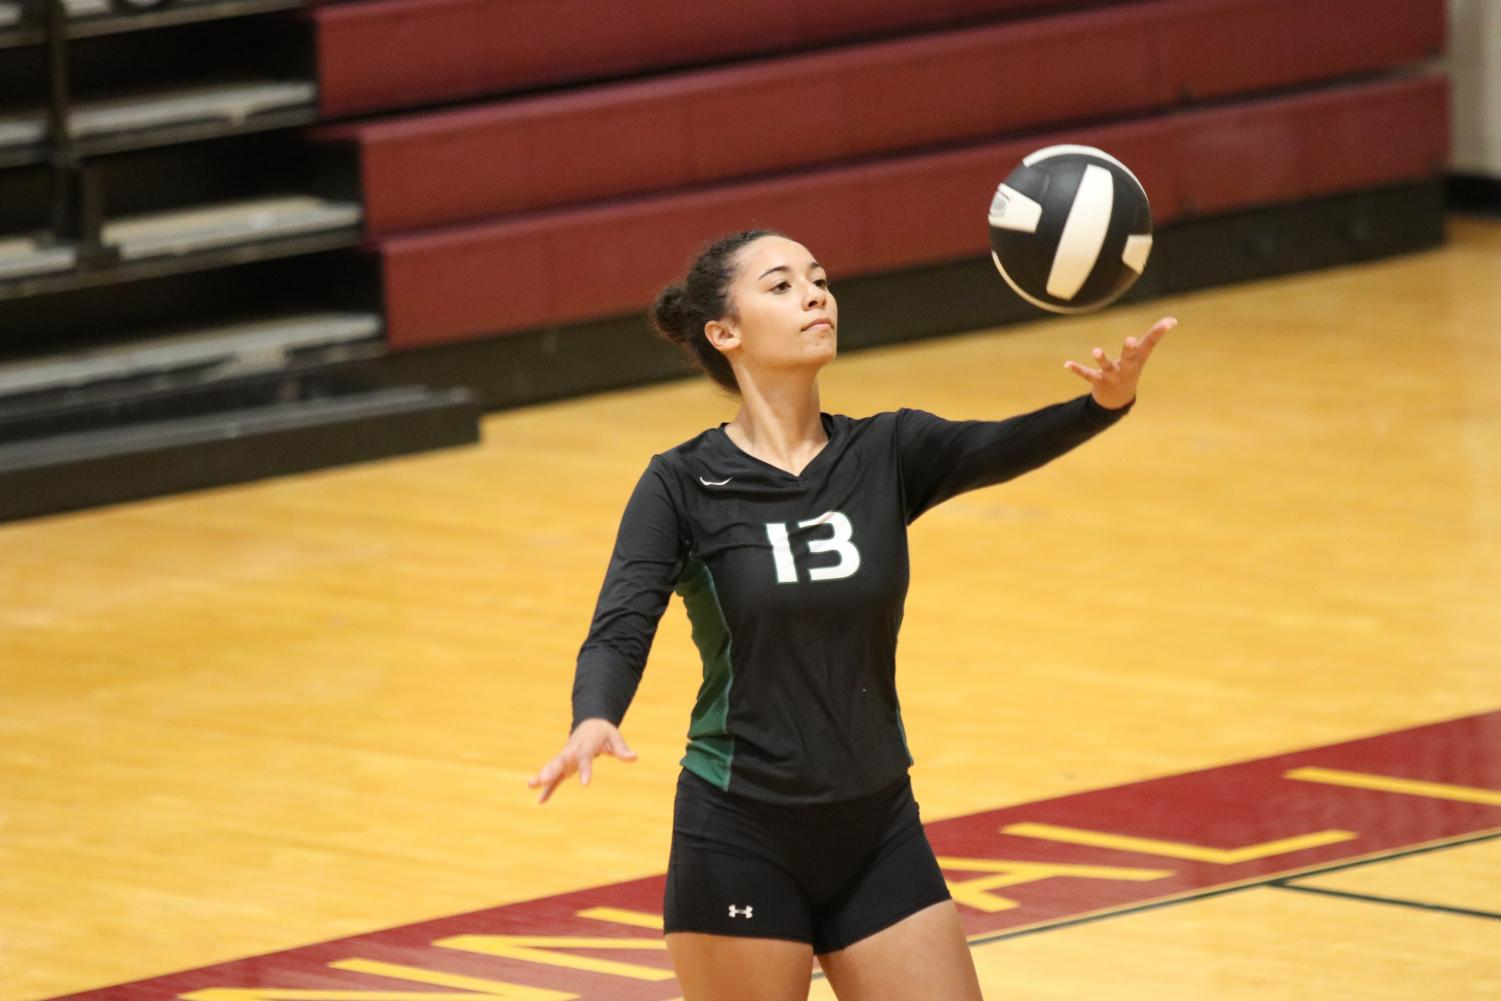 Senior Emily Popielec serves the ball in a game against Seminole Charter on Sept. 3.